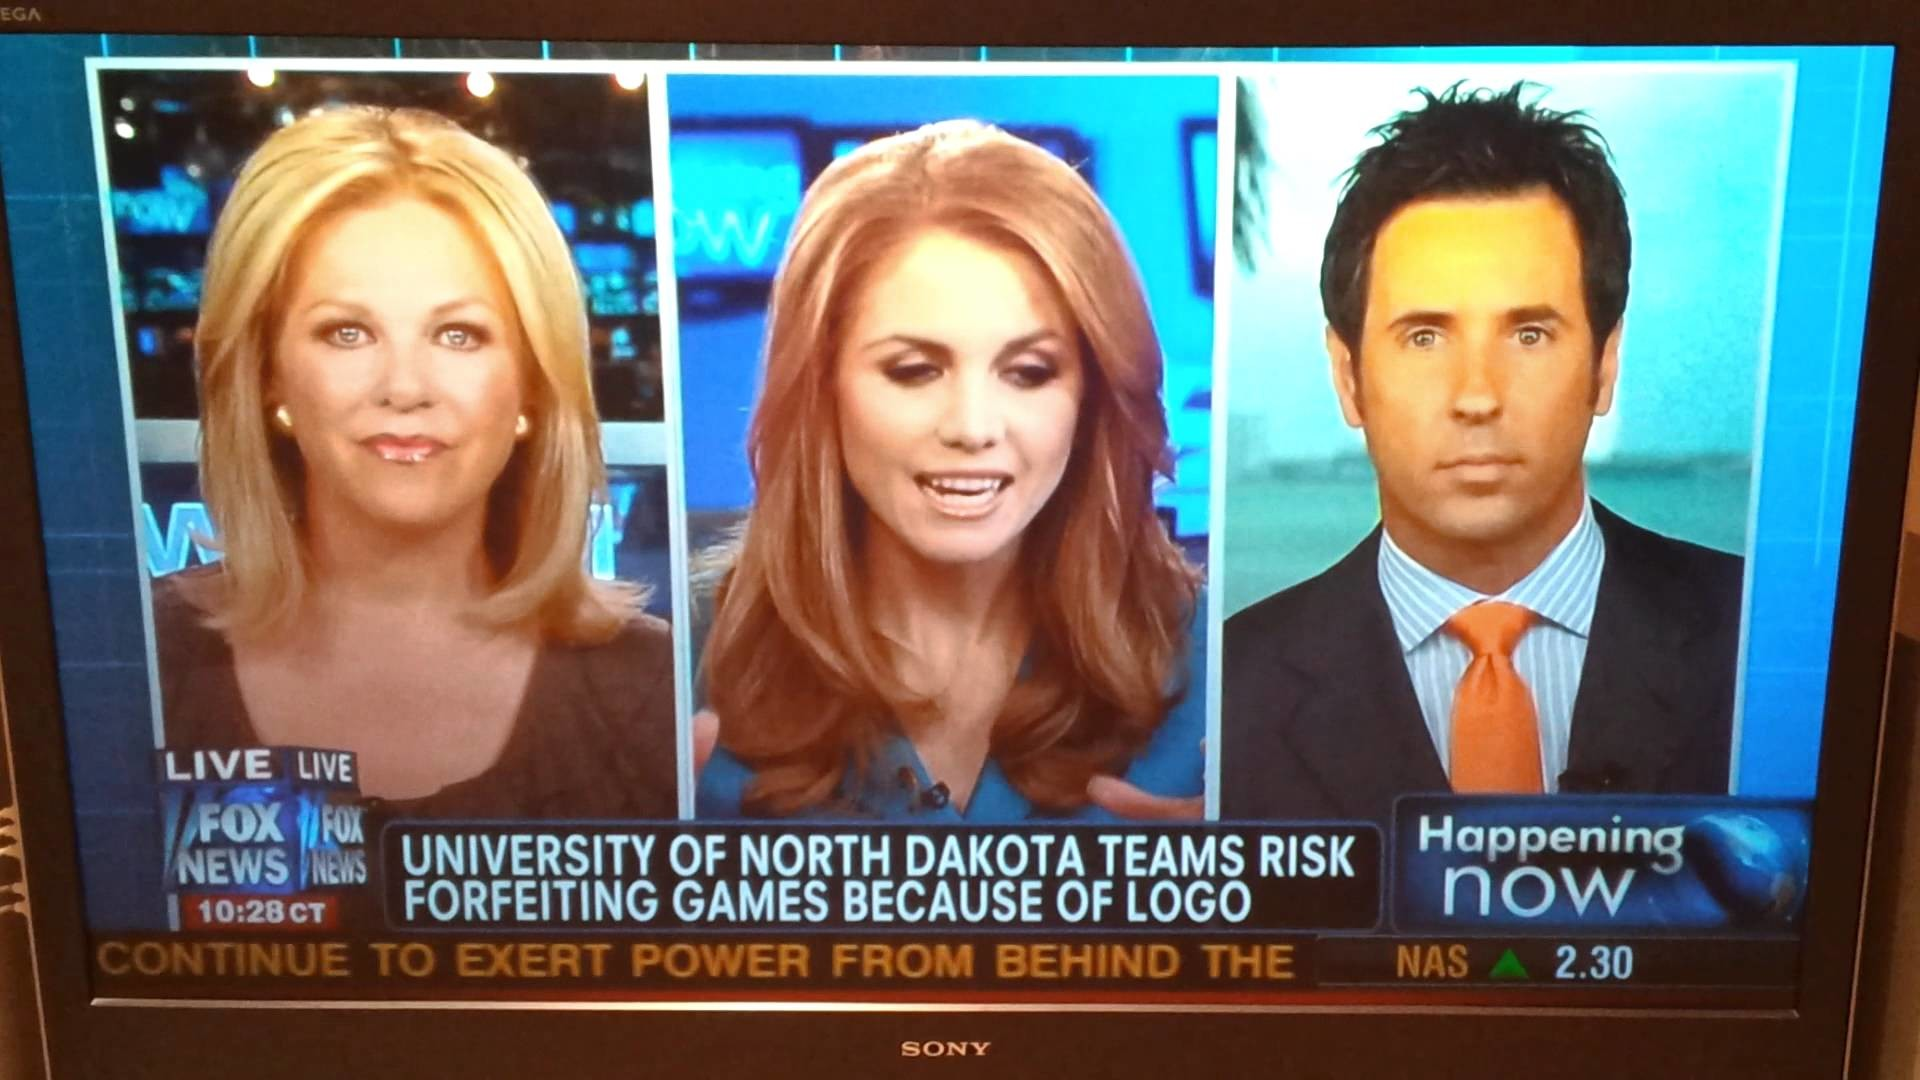 Res: 1920x1080, Fighting Sioux Nickname Story on Fox News